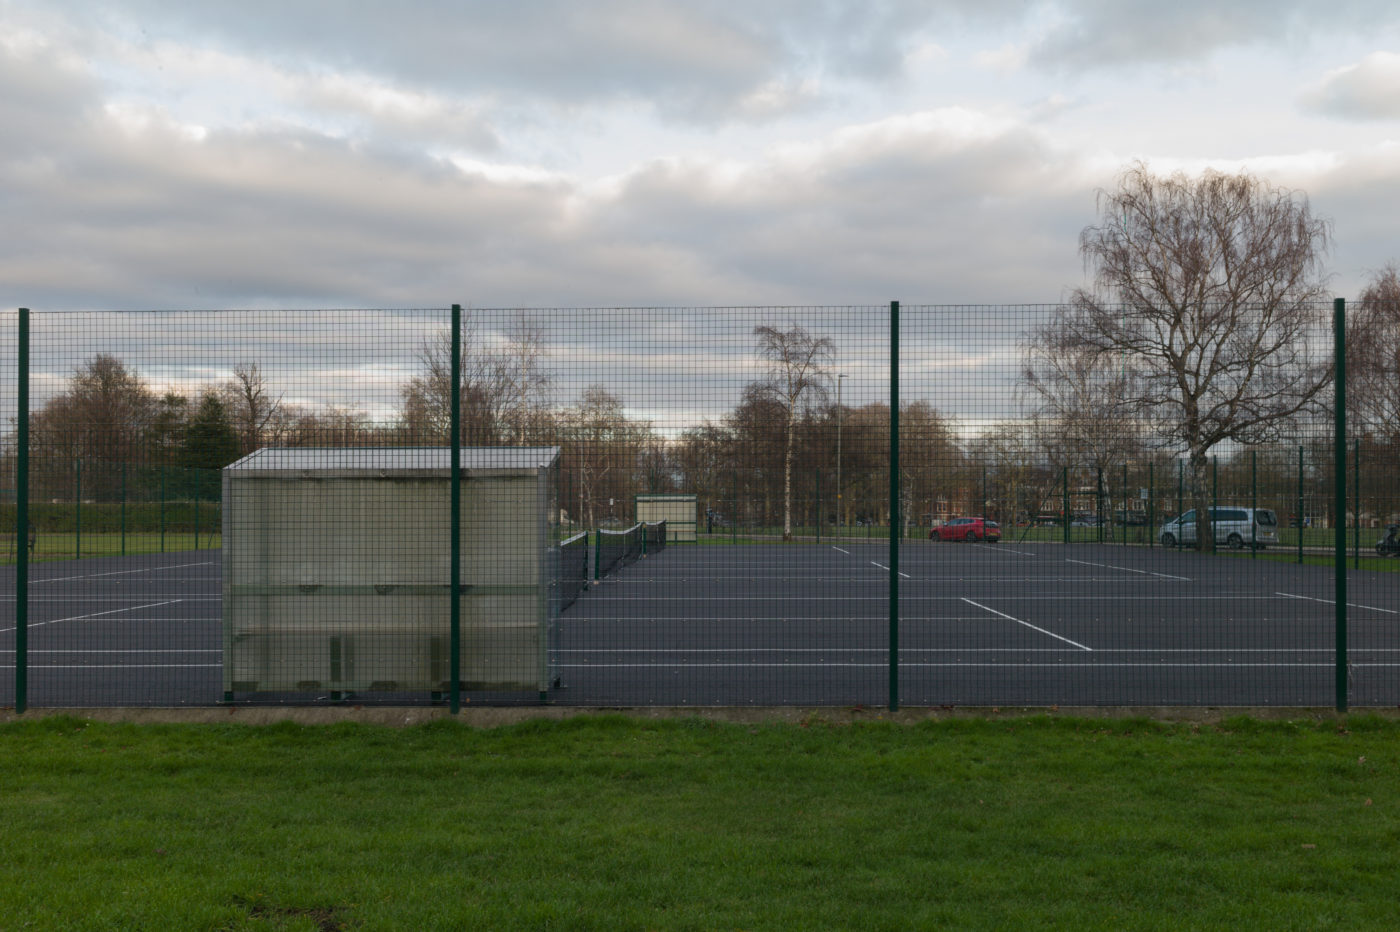 Clapham Common Tennis Court